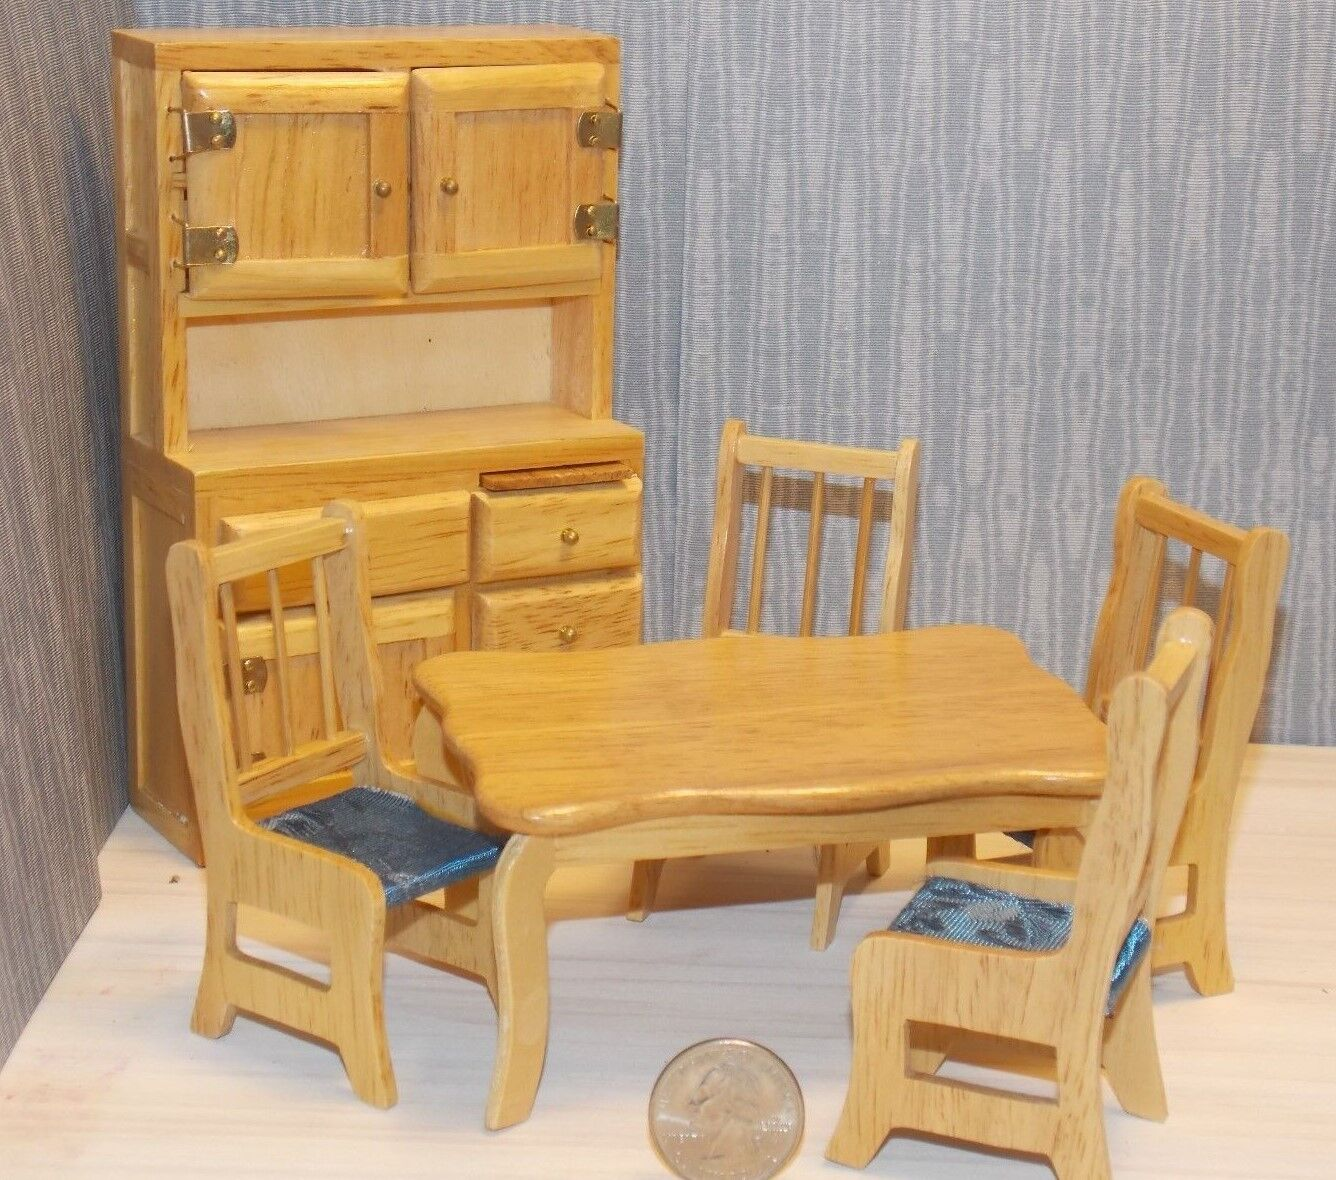 Dollhouse Miniature Dining Table Chairs Hutch 1 1 1 12 Inch Scale G2